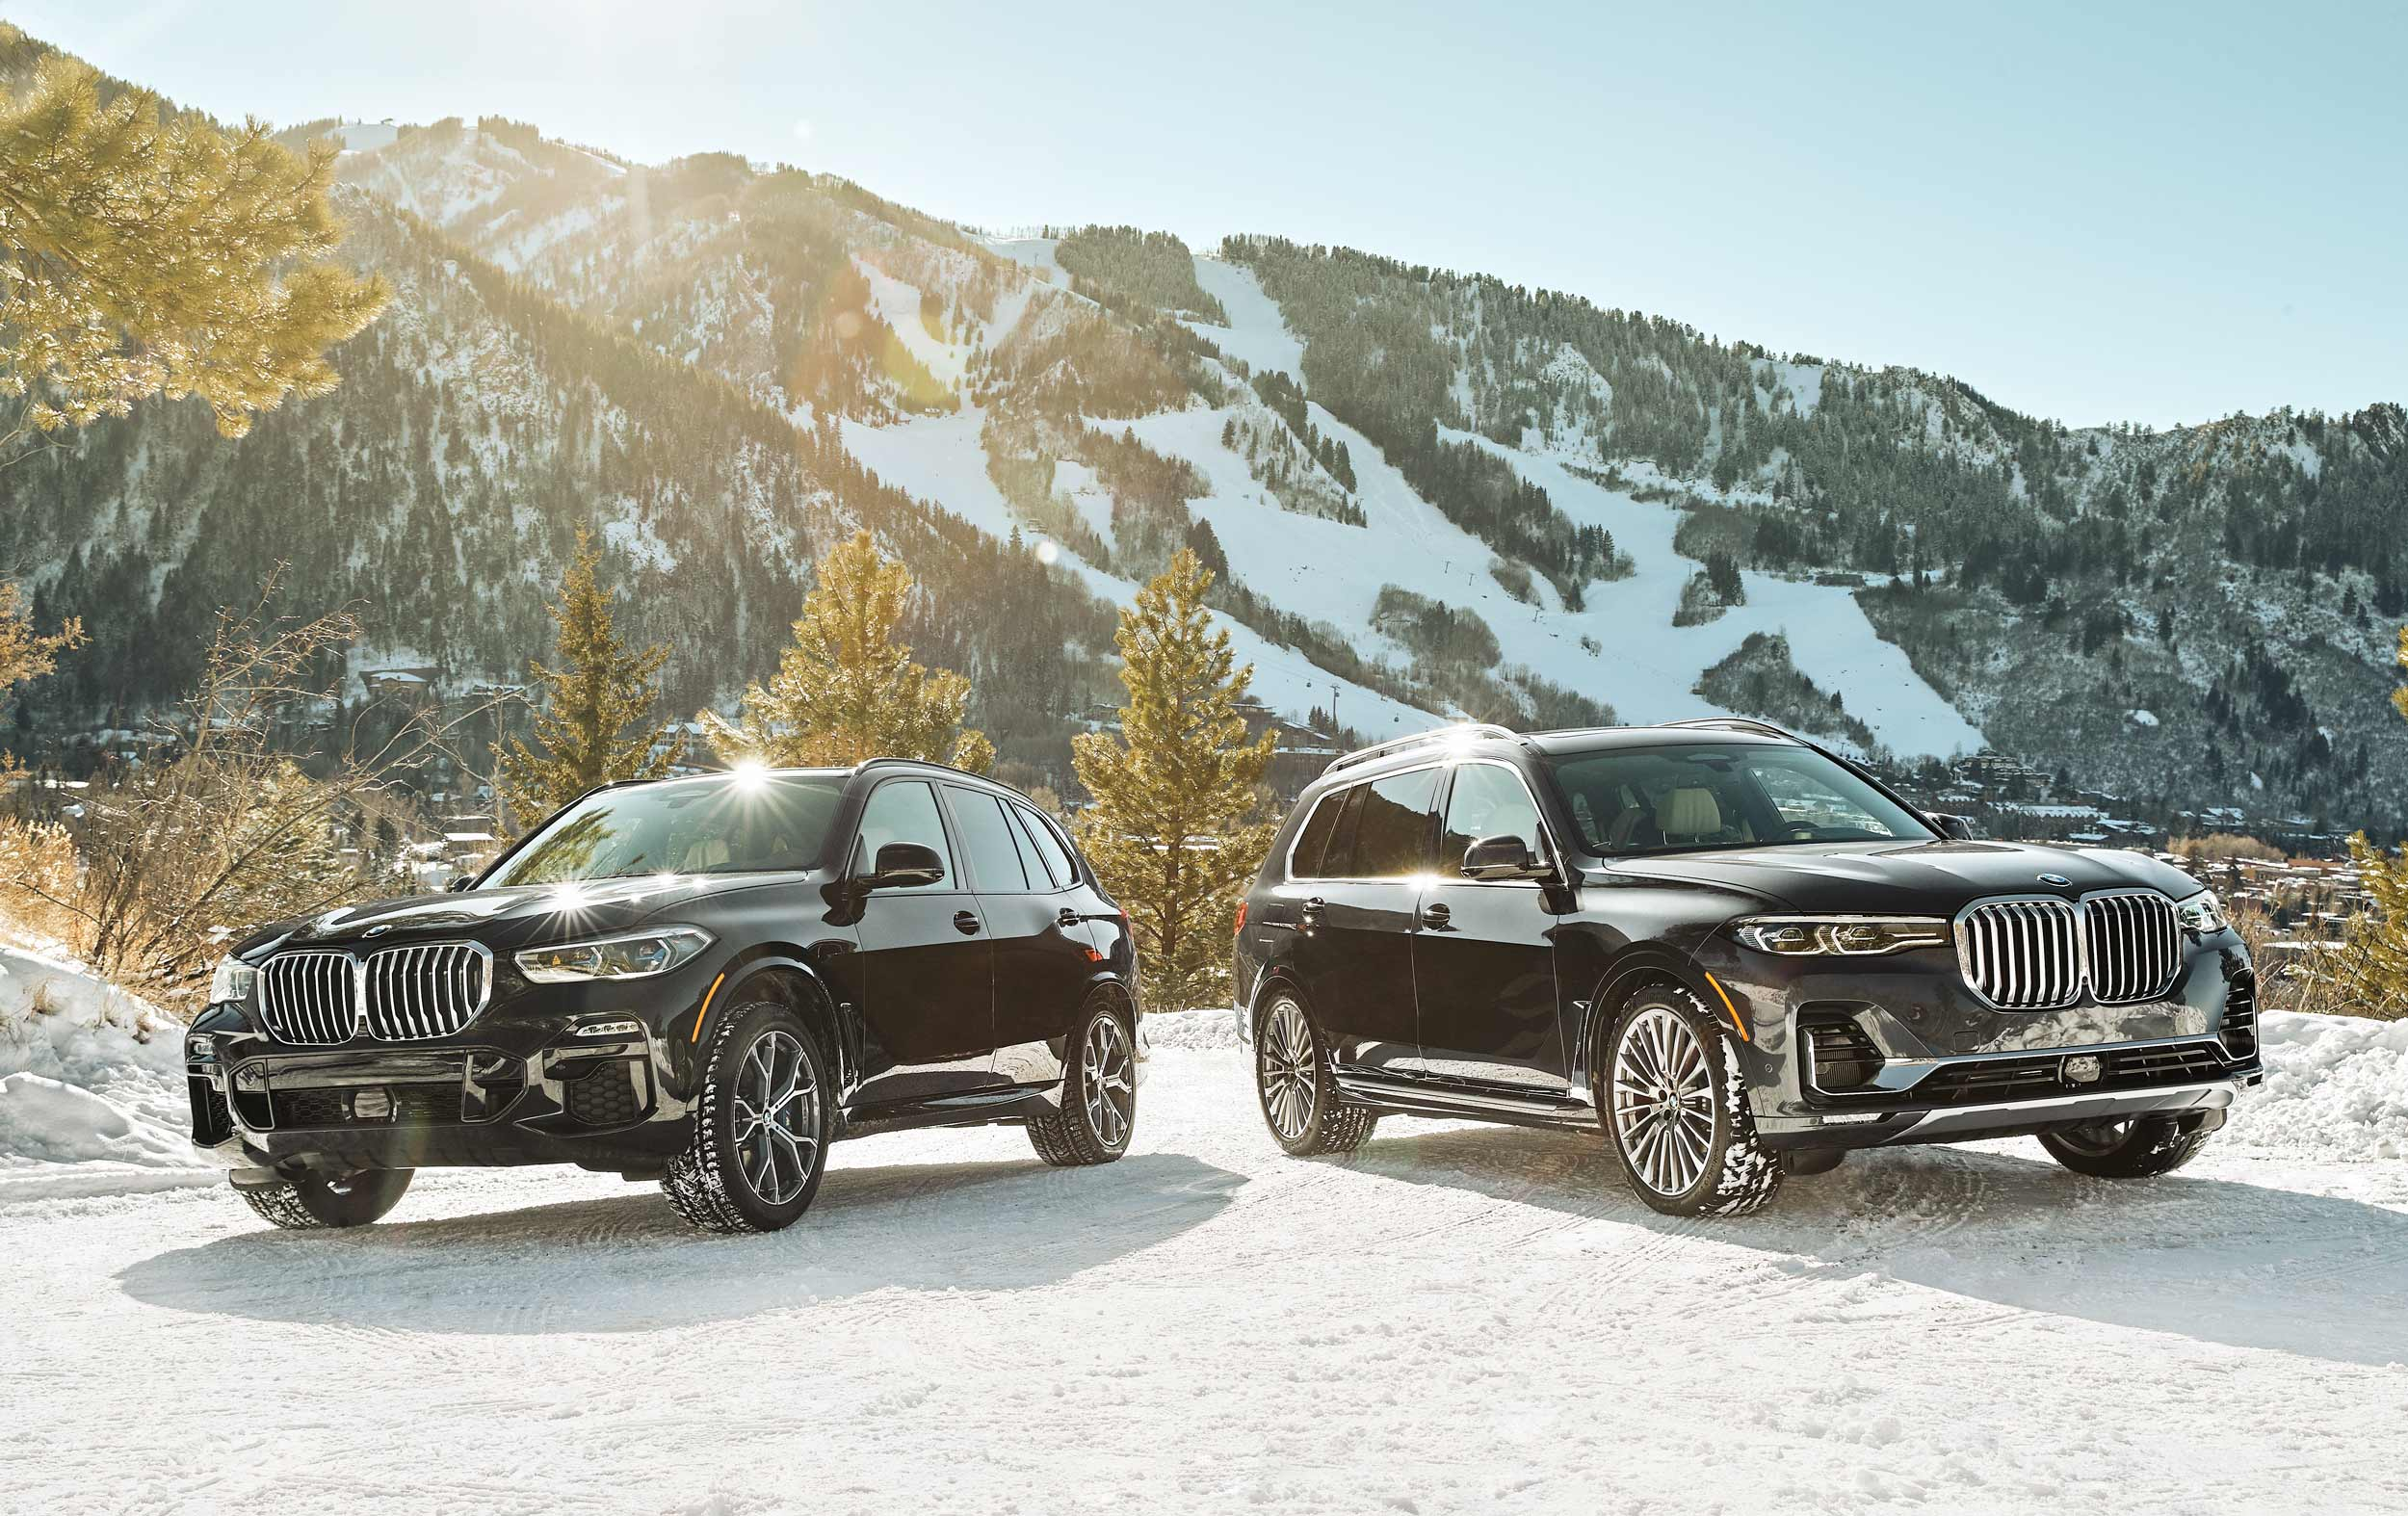 121318_maguire_amex_bmw-aspen_1641